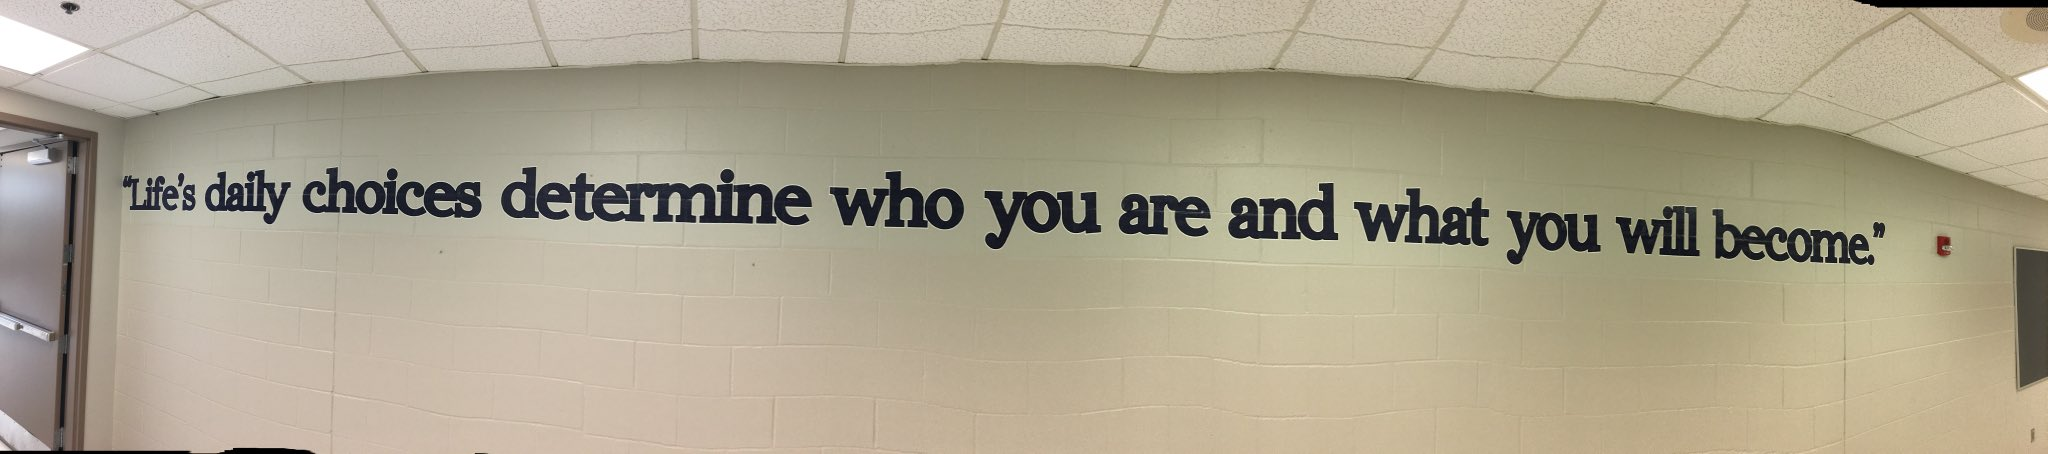 So happy to have spotted this on the wall at our high school. Our minutes, days, years and ultimately our destiny...always defined by the choices we make. #InspiringExcellenceLC @LewisCentralCSD @LCHSPrincipals https://t.co/KWfh3n0VTY